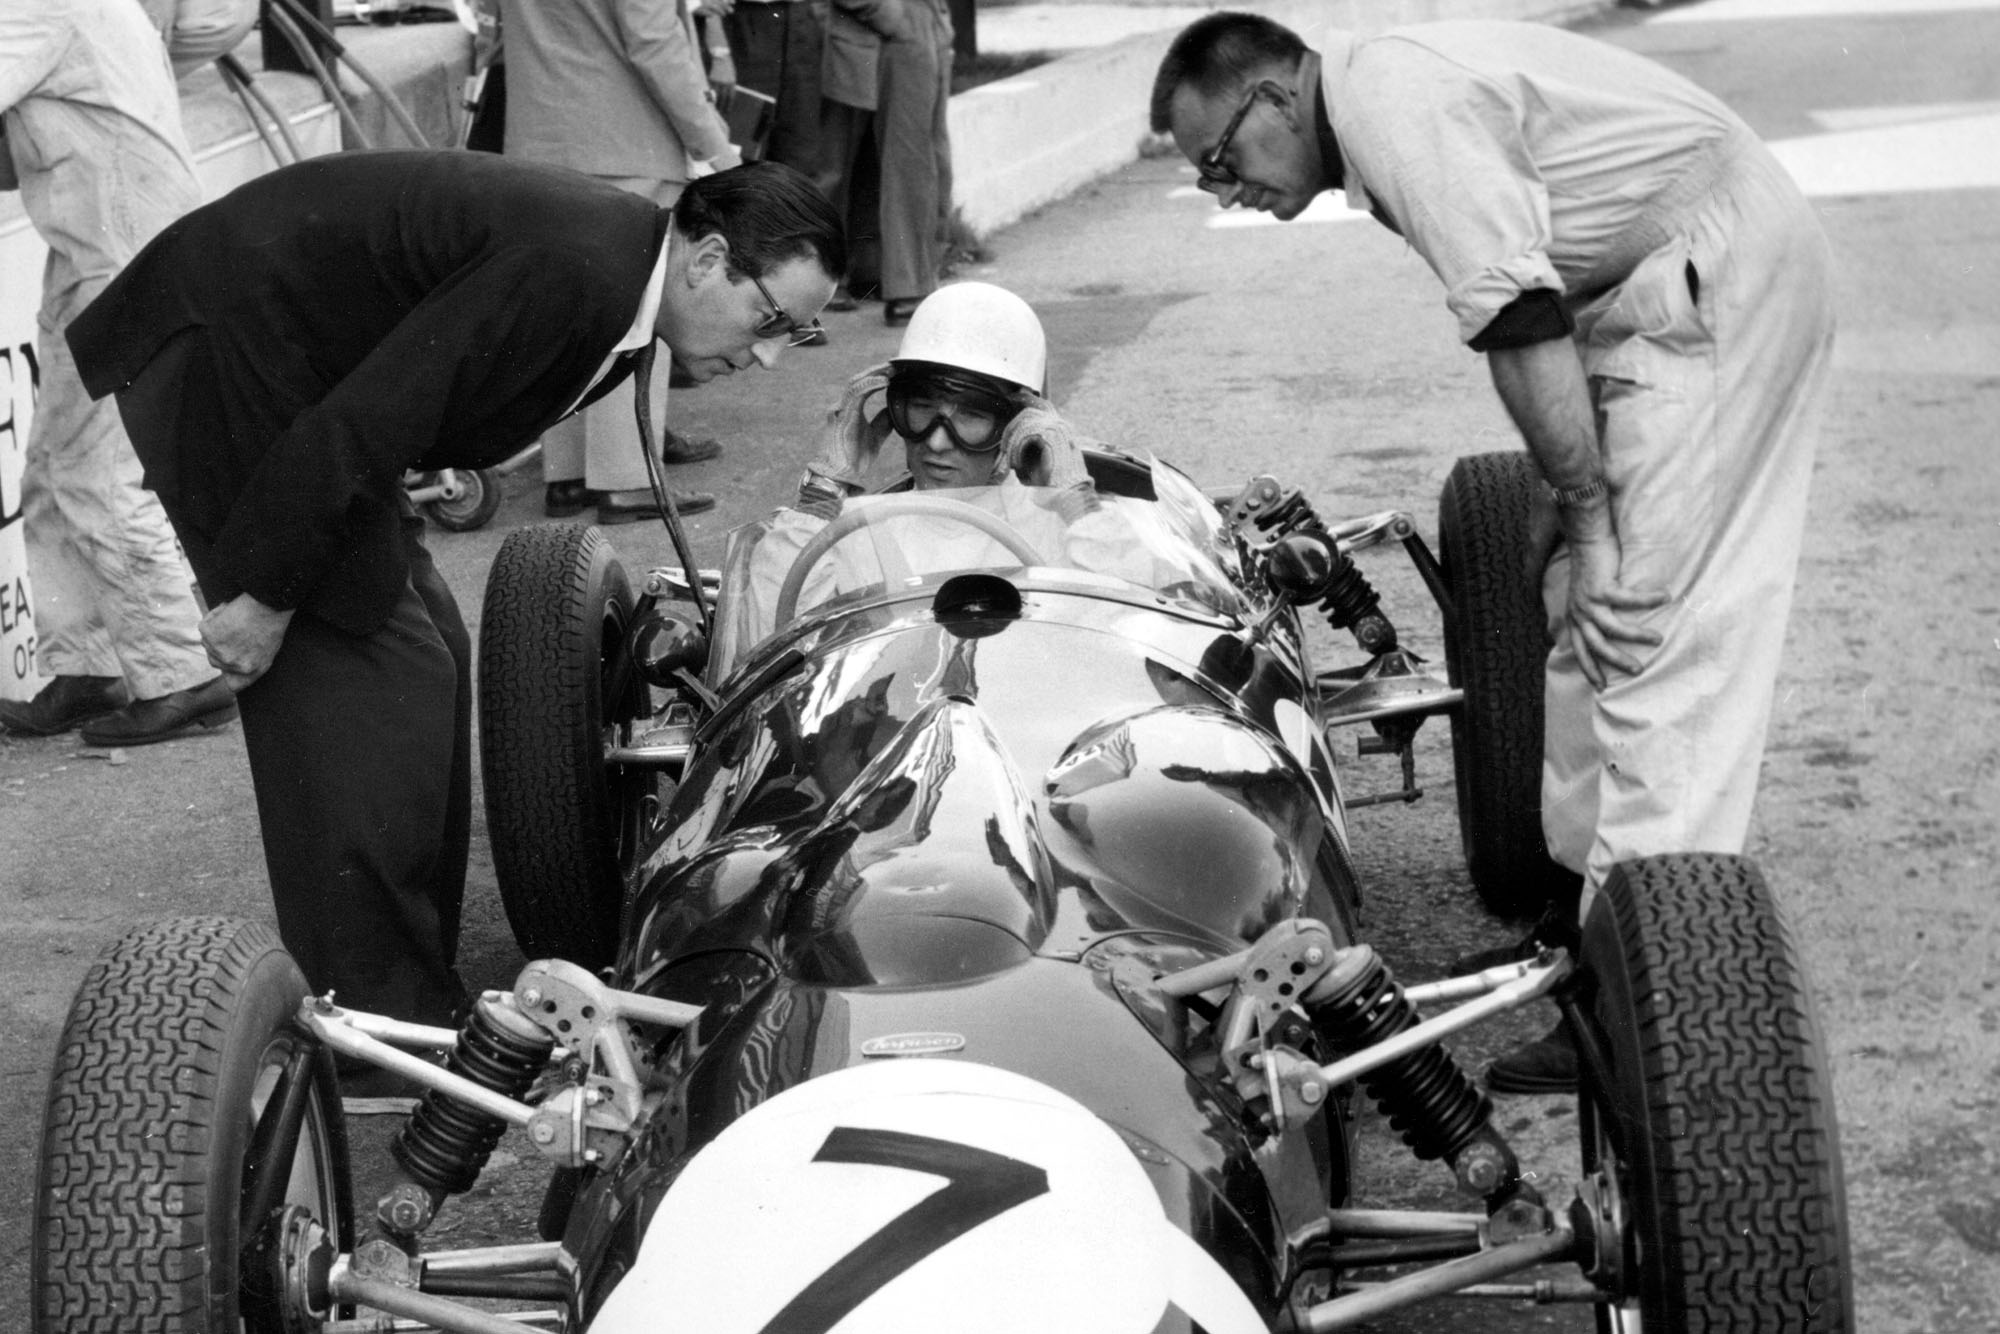 1961 Ferguson P99, Stirling Moss in pits with APR Rolt and Alf Francis. Creator: Unknown. (Photo by National Motor Museum/Heritage Images via Getty Images)